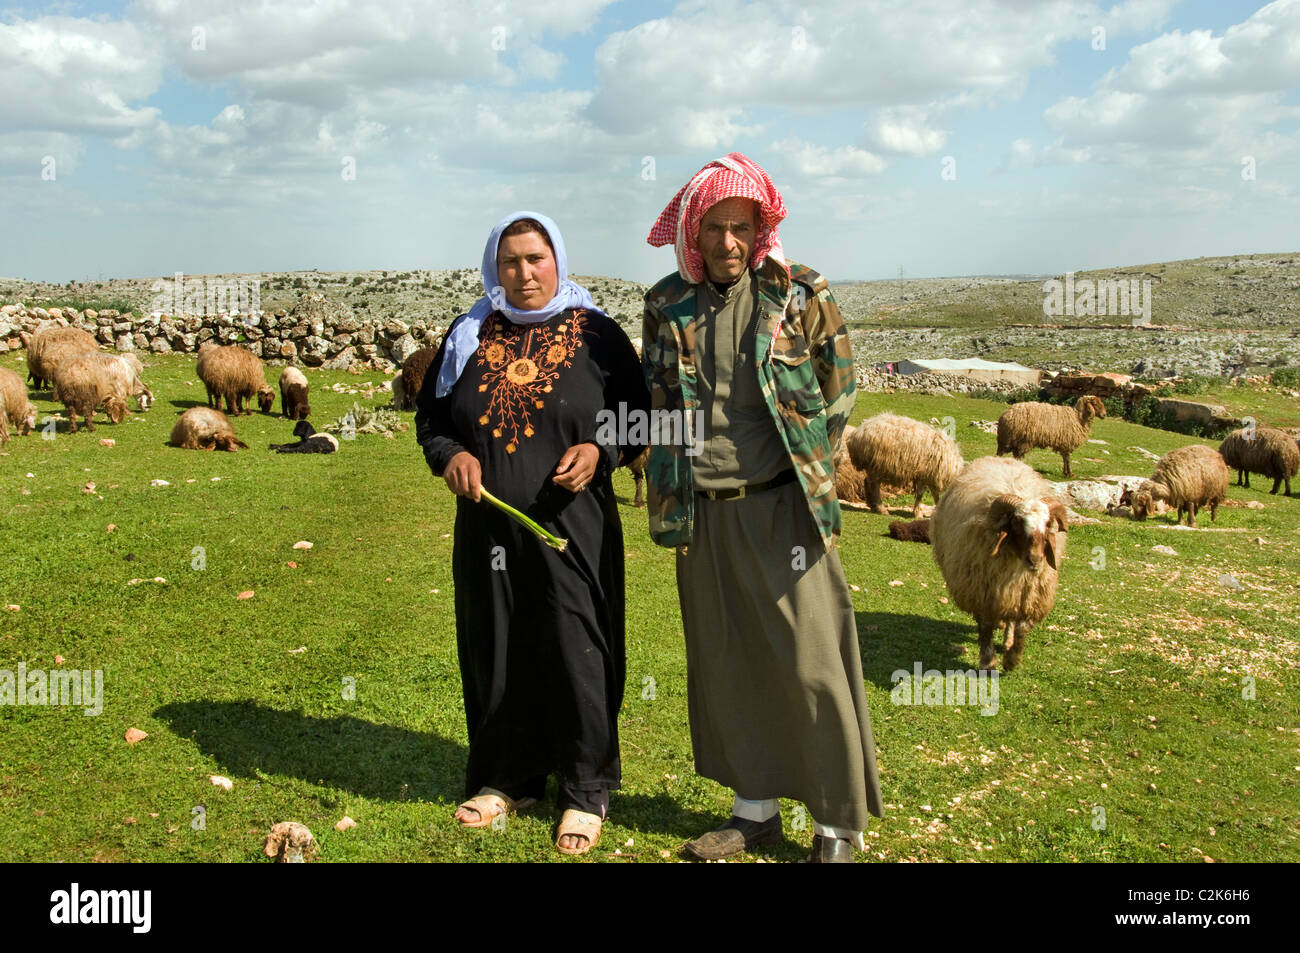 sheep ranch muslim single women It should be obvious, yet muslim women are often presented as different, exotic,  or even a symbol of backwardness a middle eastern secondary teacher urged.